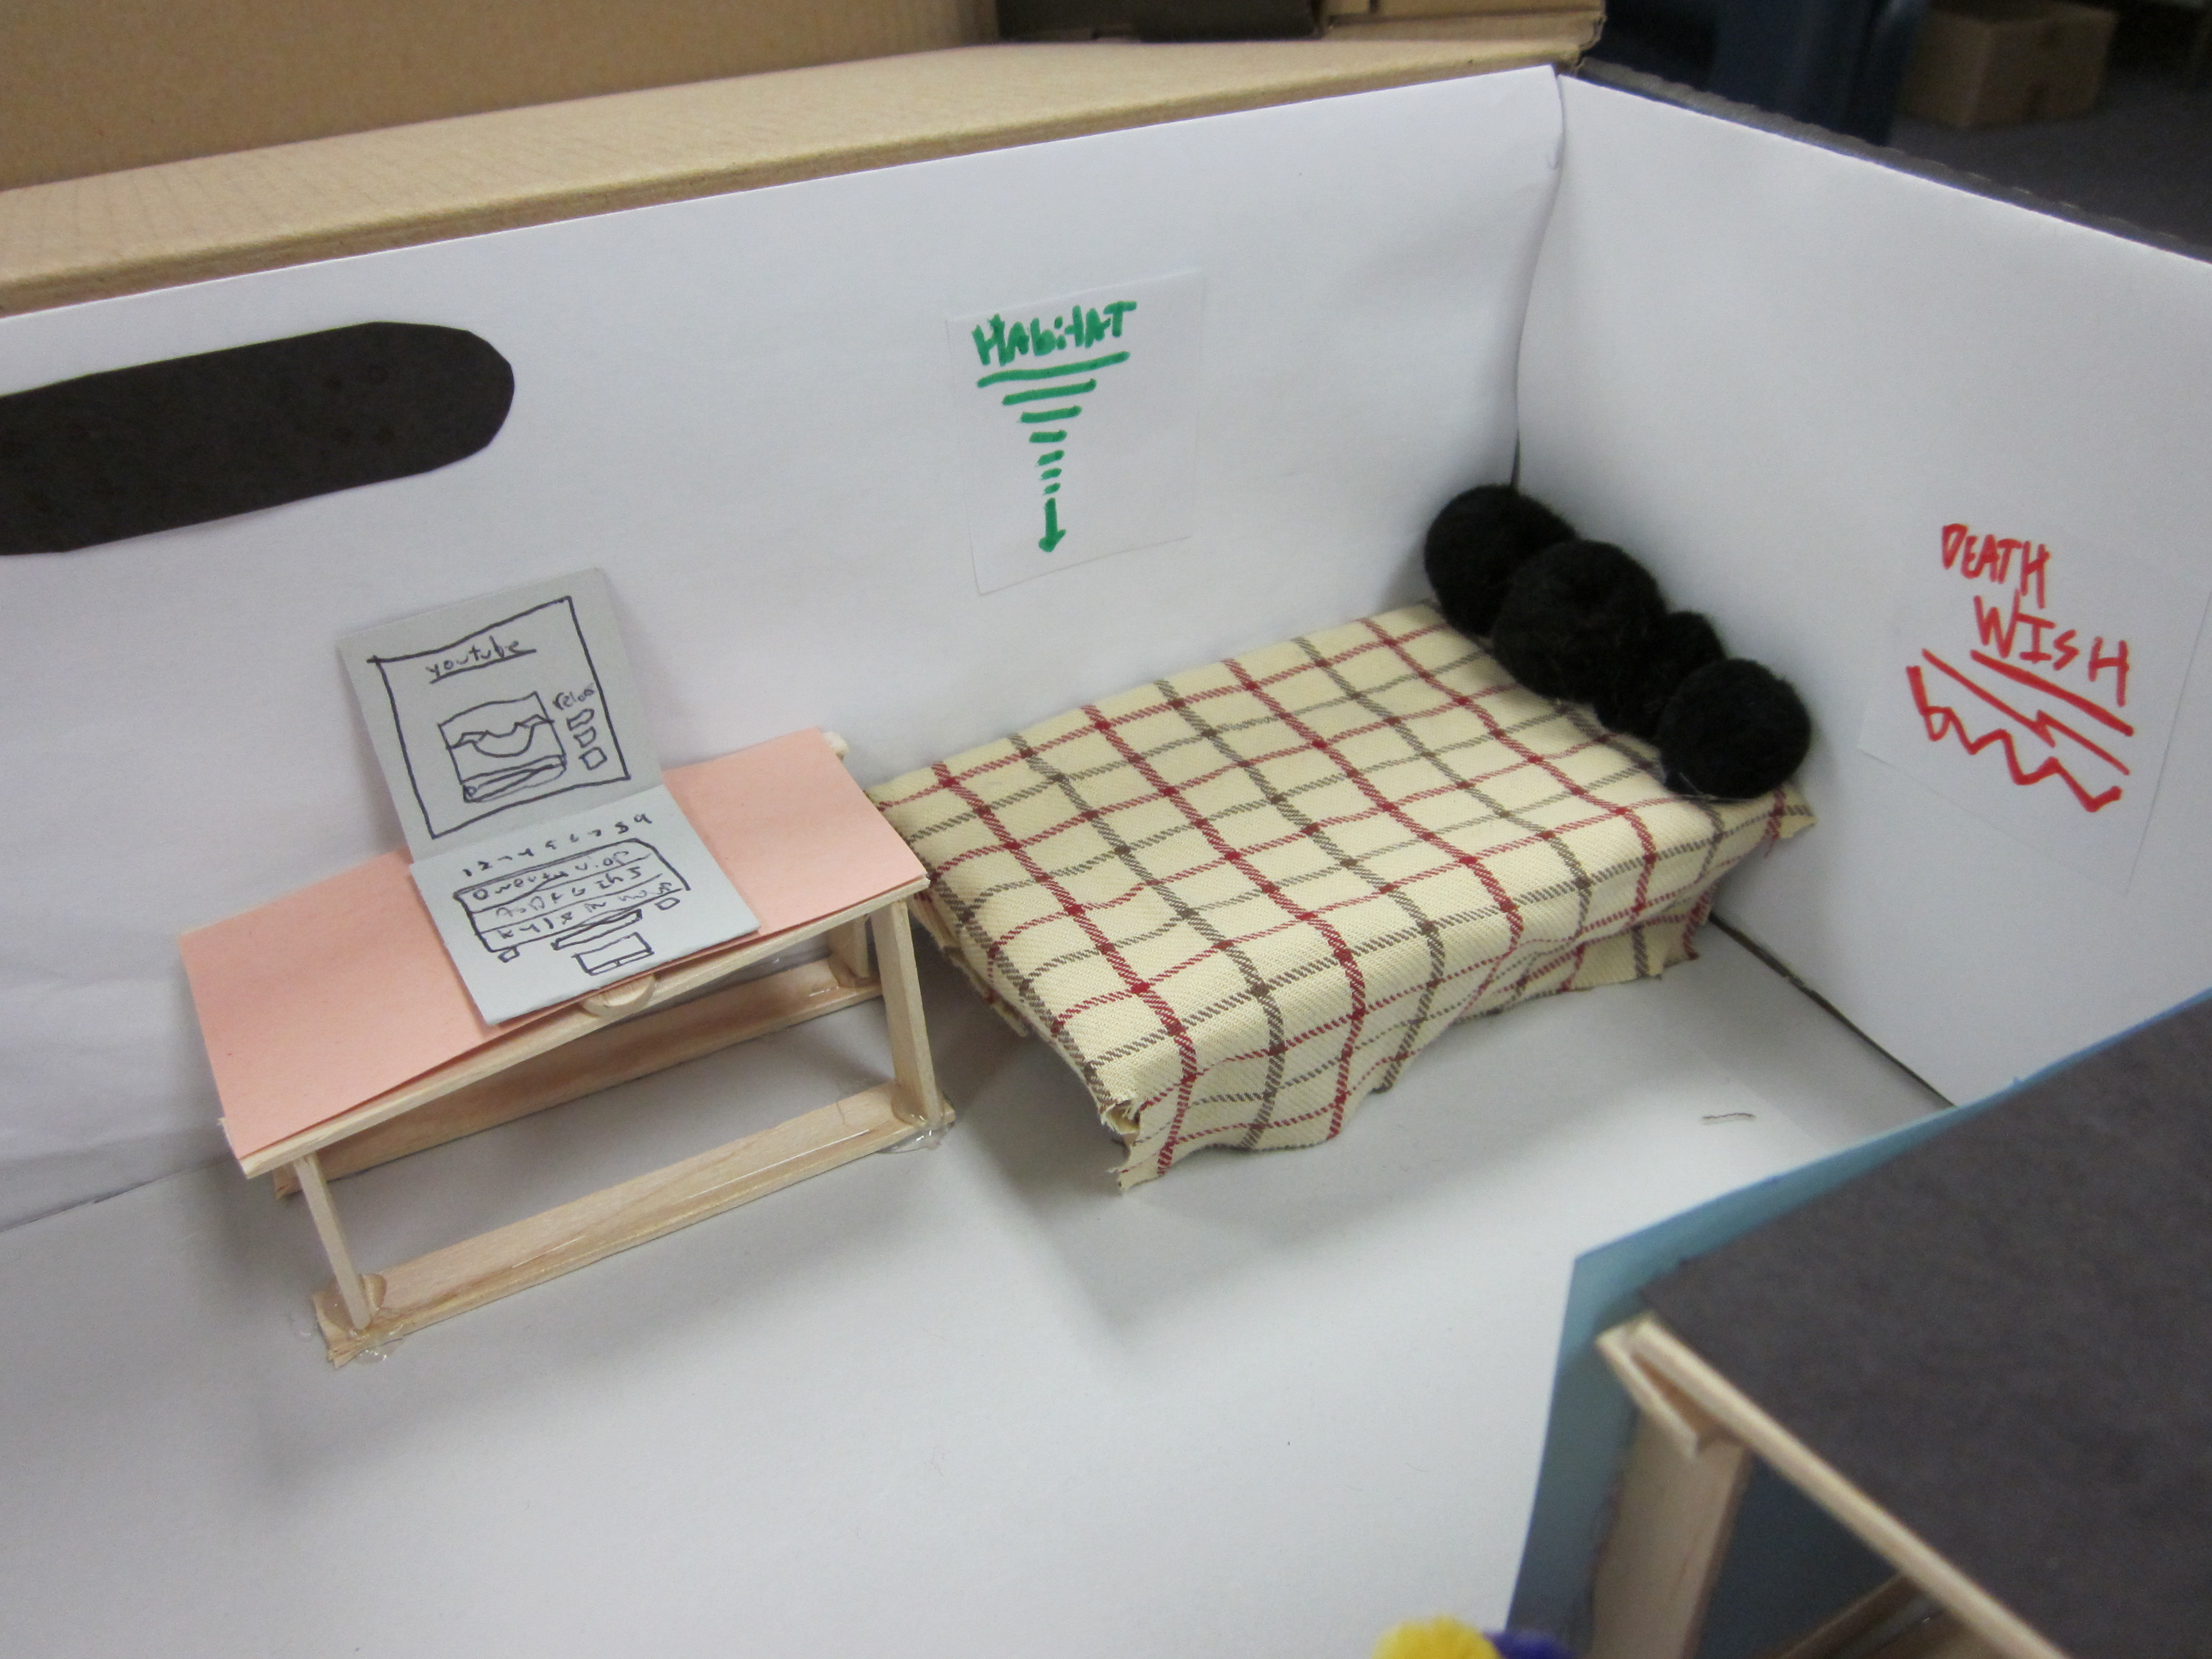 Shoe Box Room Design Final Project